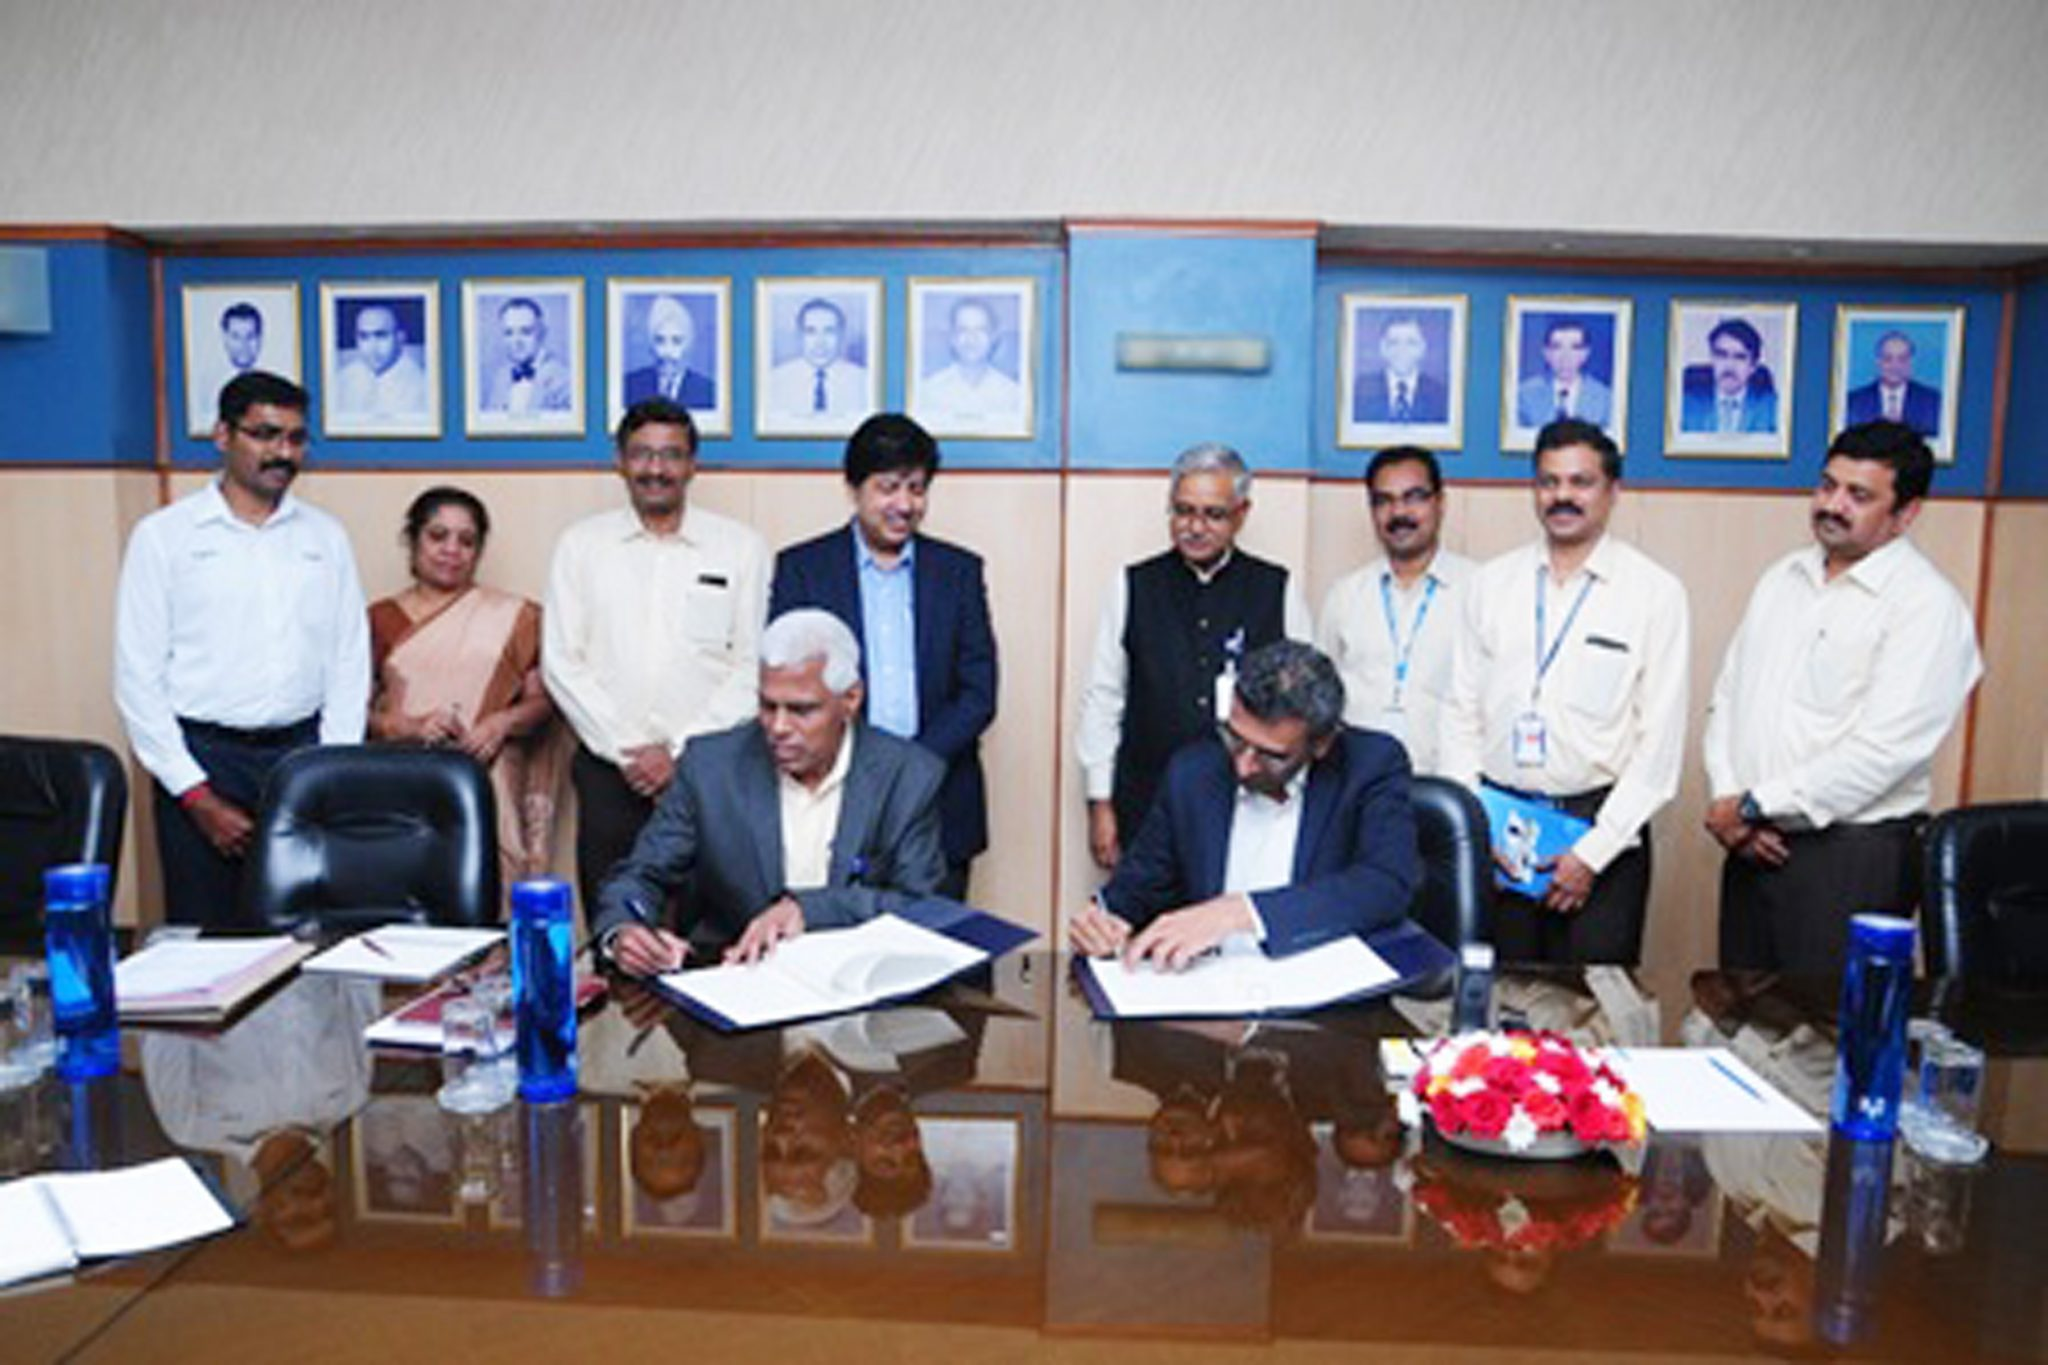 Mr K Rajamani, GM Engines, HAL and Mr Ajay Parikh, Vice President & Business Head at Wipro 3D signing the MoU. Photo via HAL.